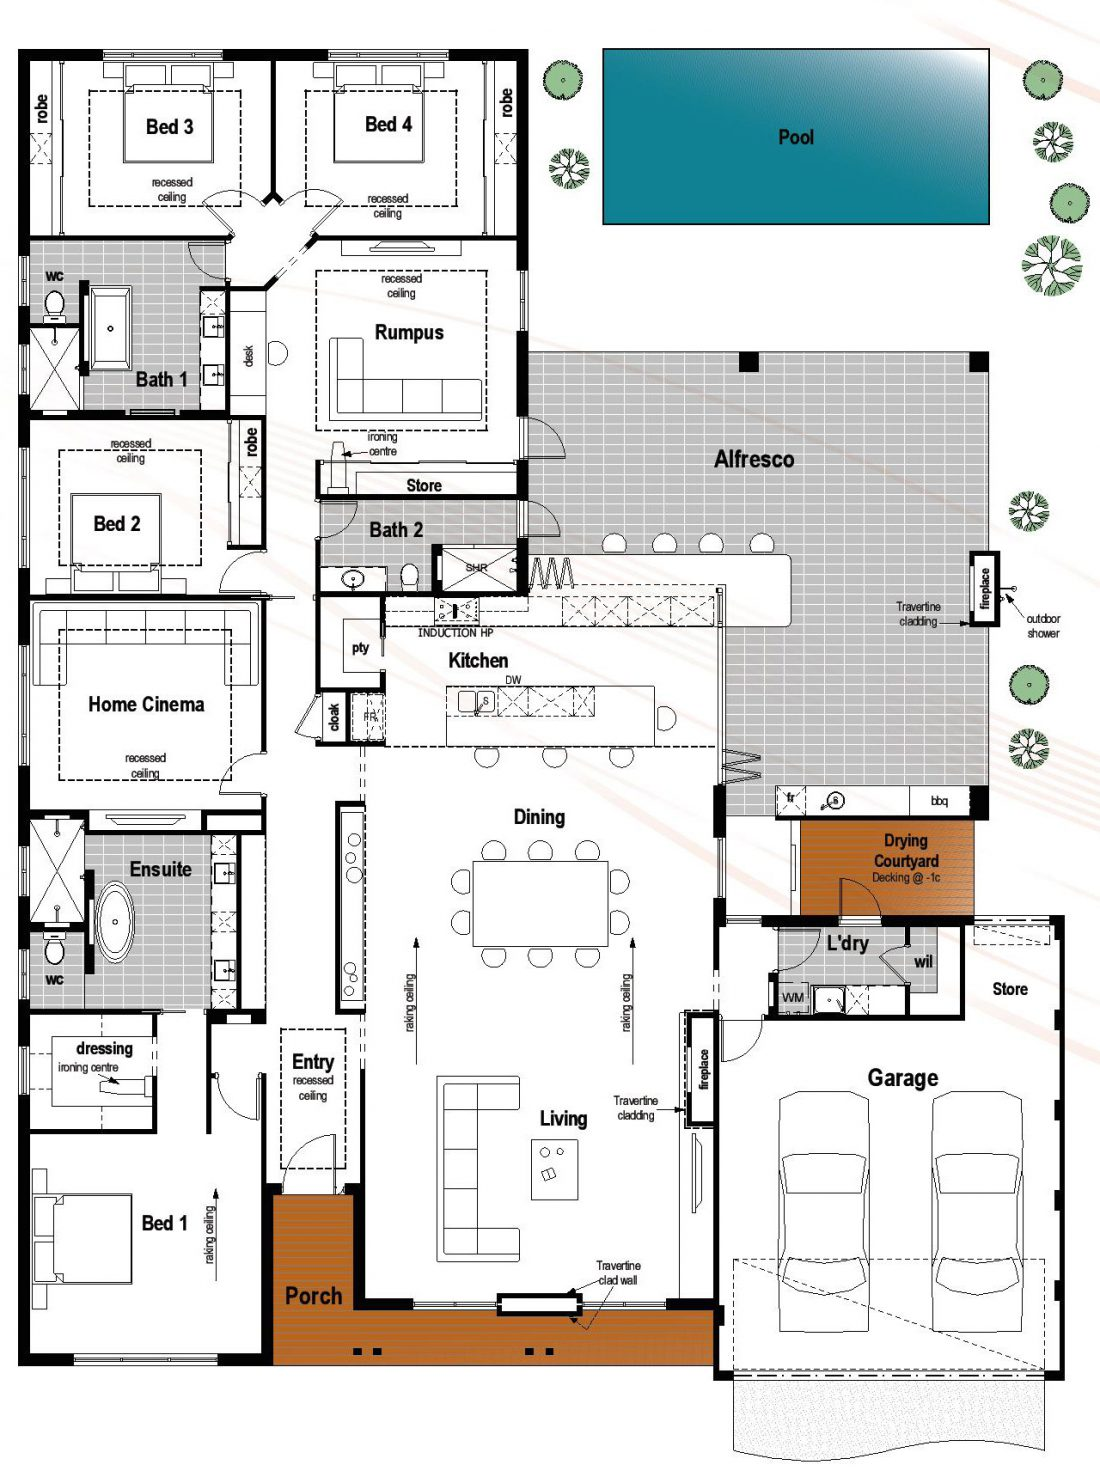 Floor plan friday 4 bedroom 3 bathroom with modern for House floor plans